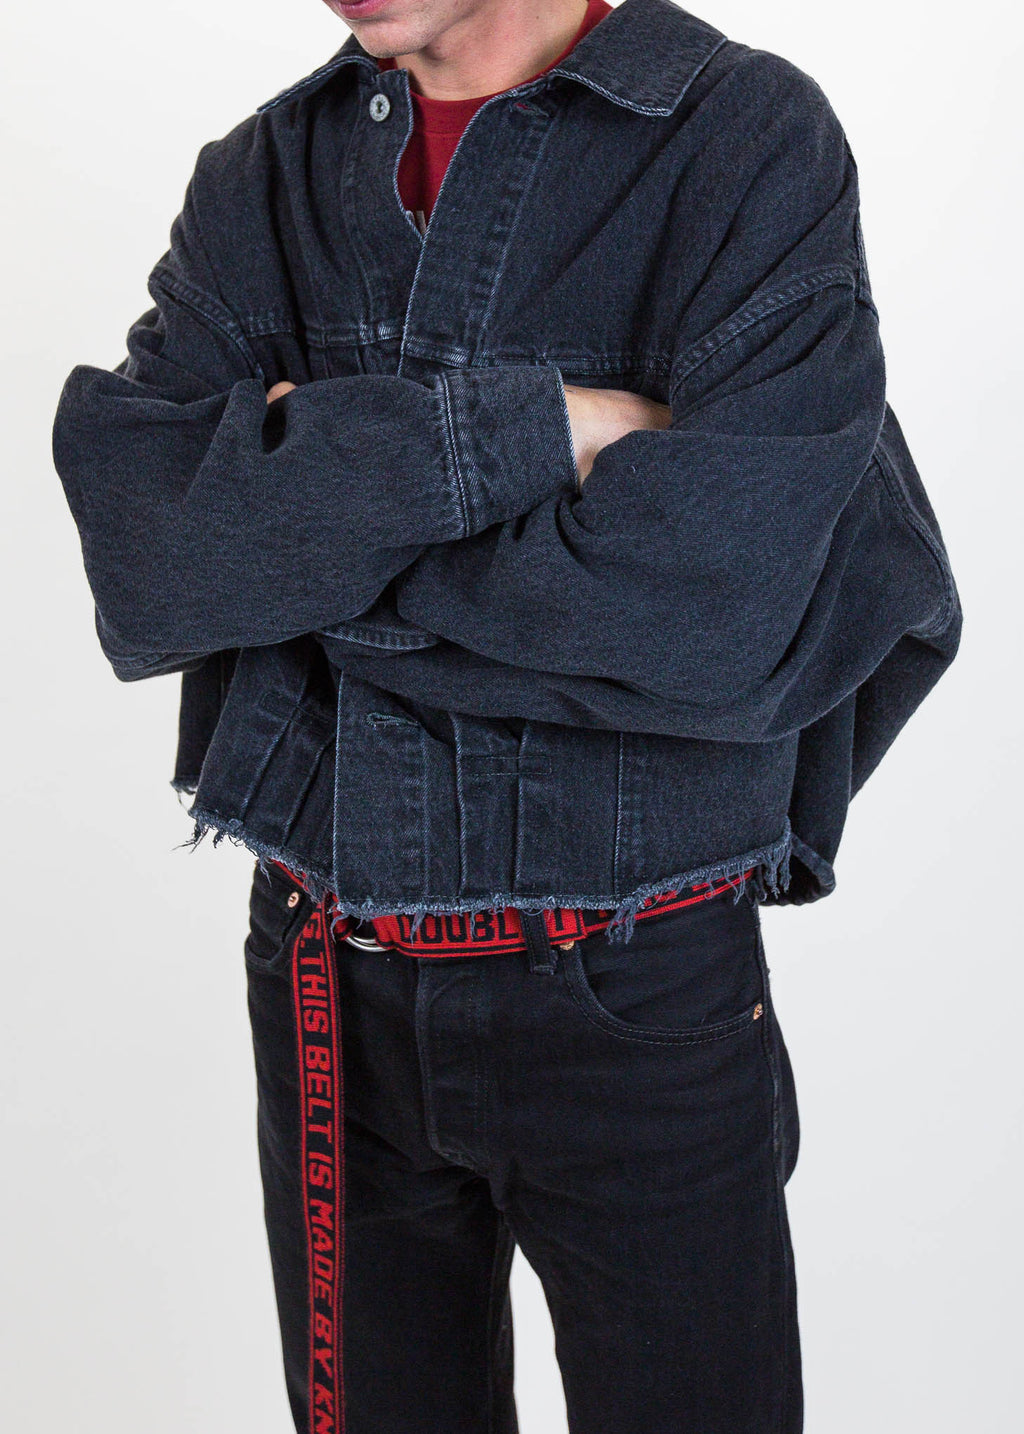 Black Cut Off Oversized Silk Denim Jacket